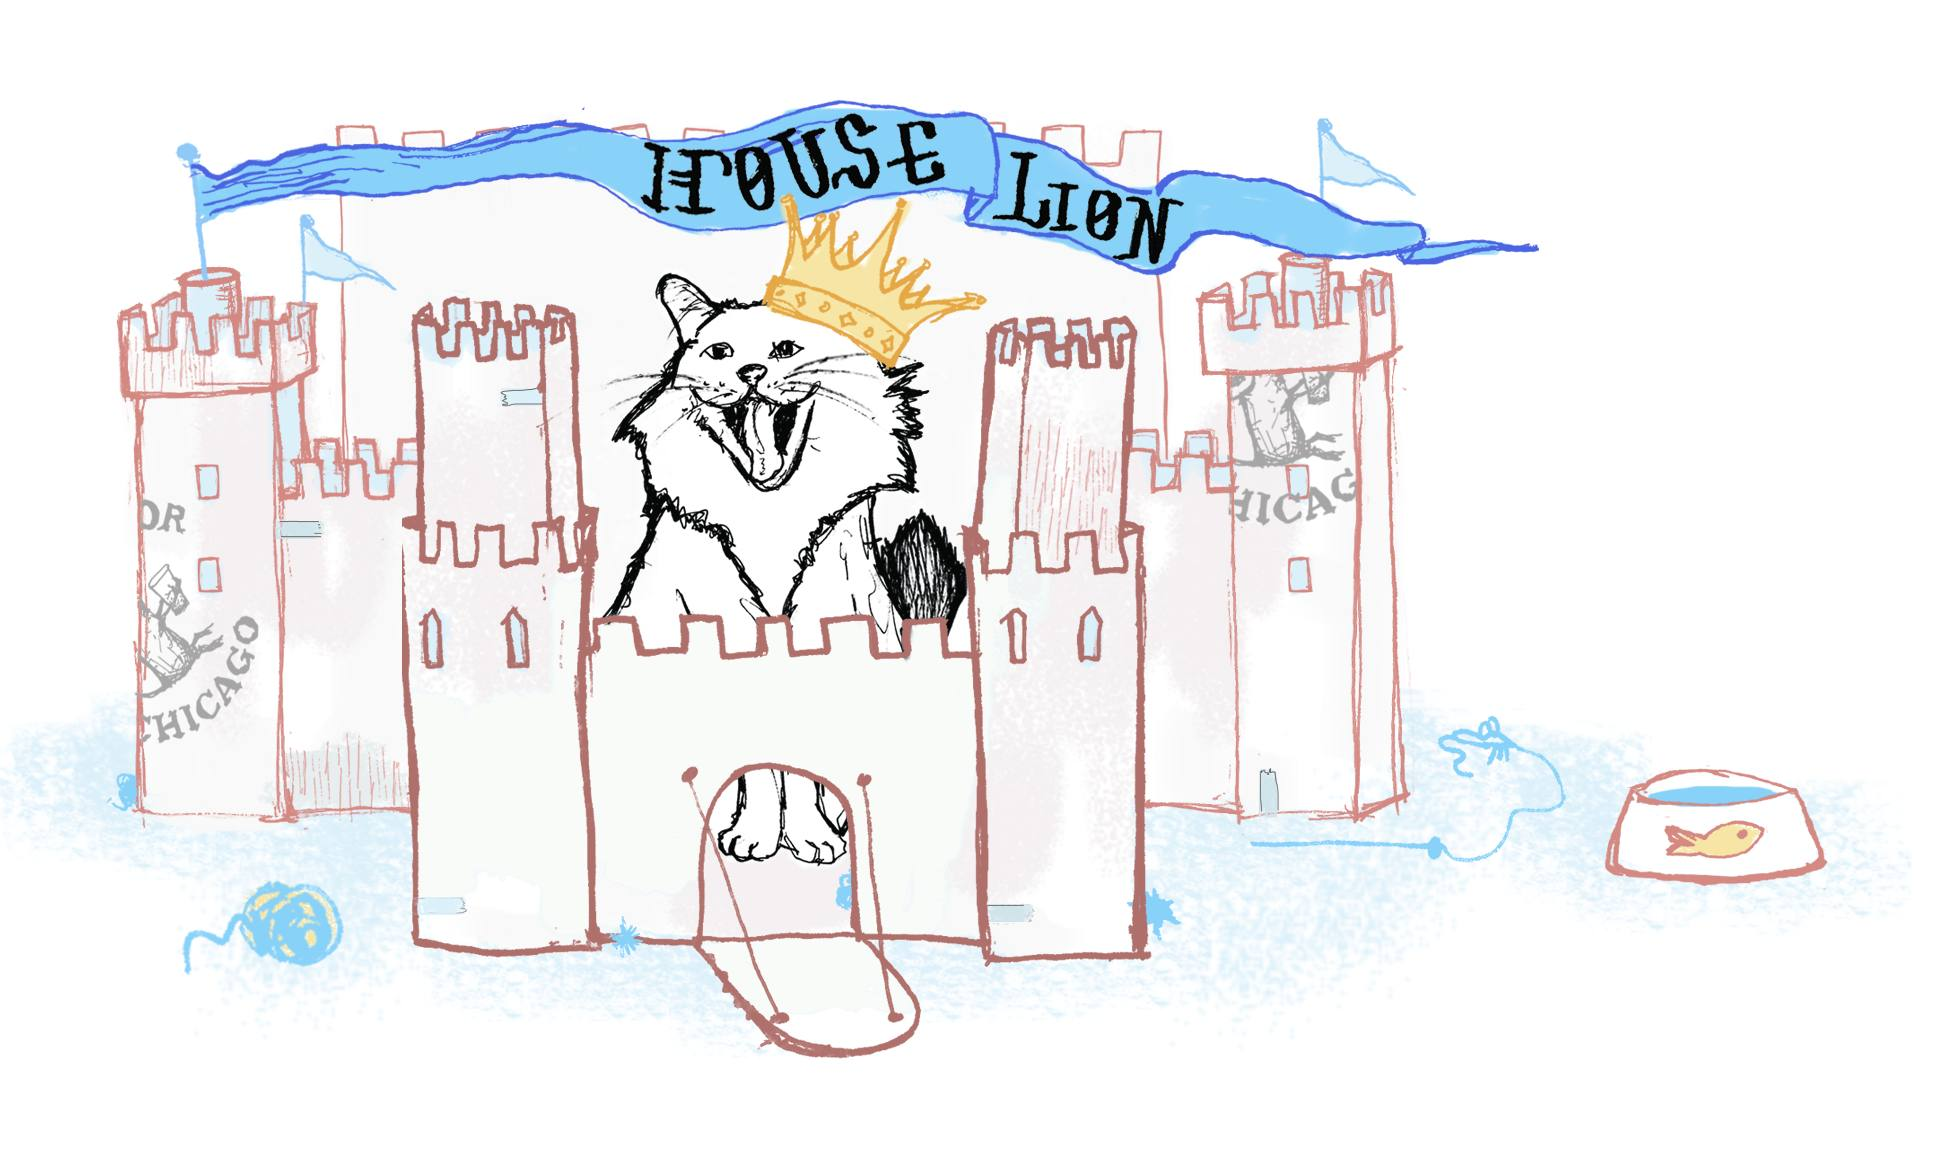 HOUSE_LION_art_only (1).jpg